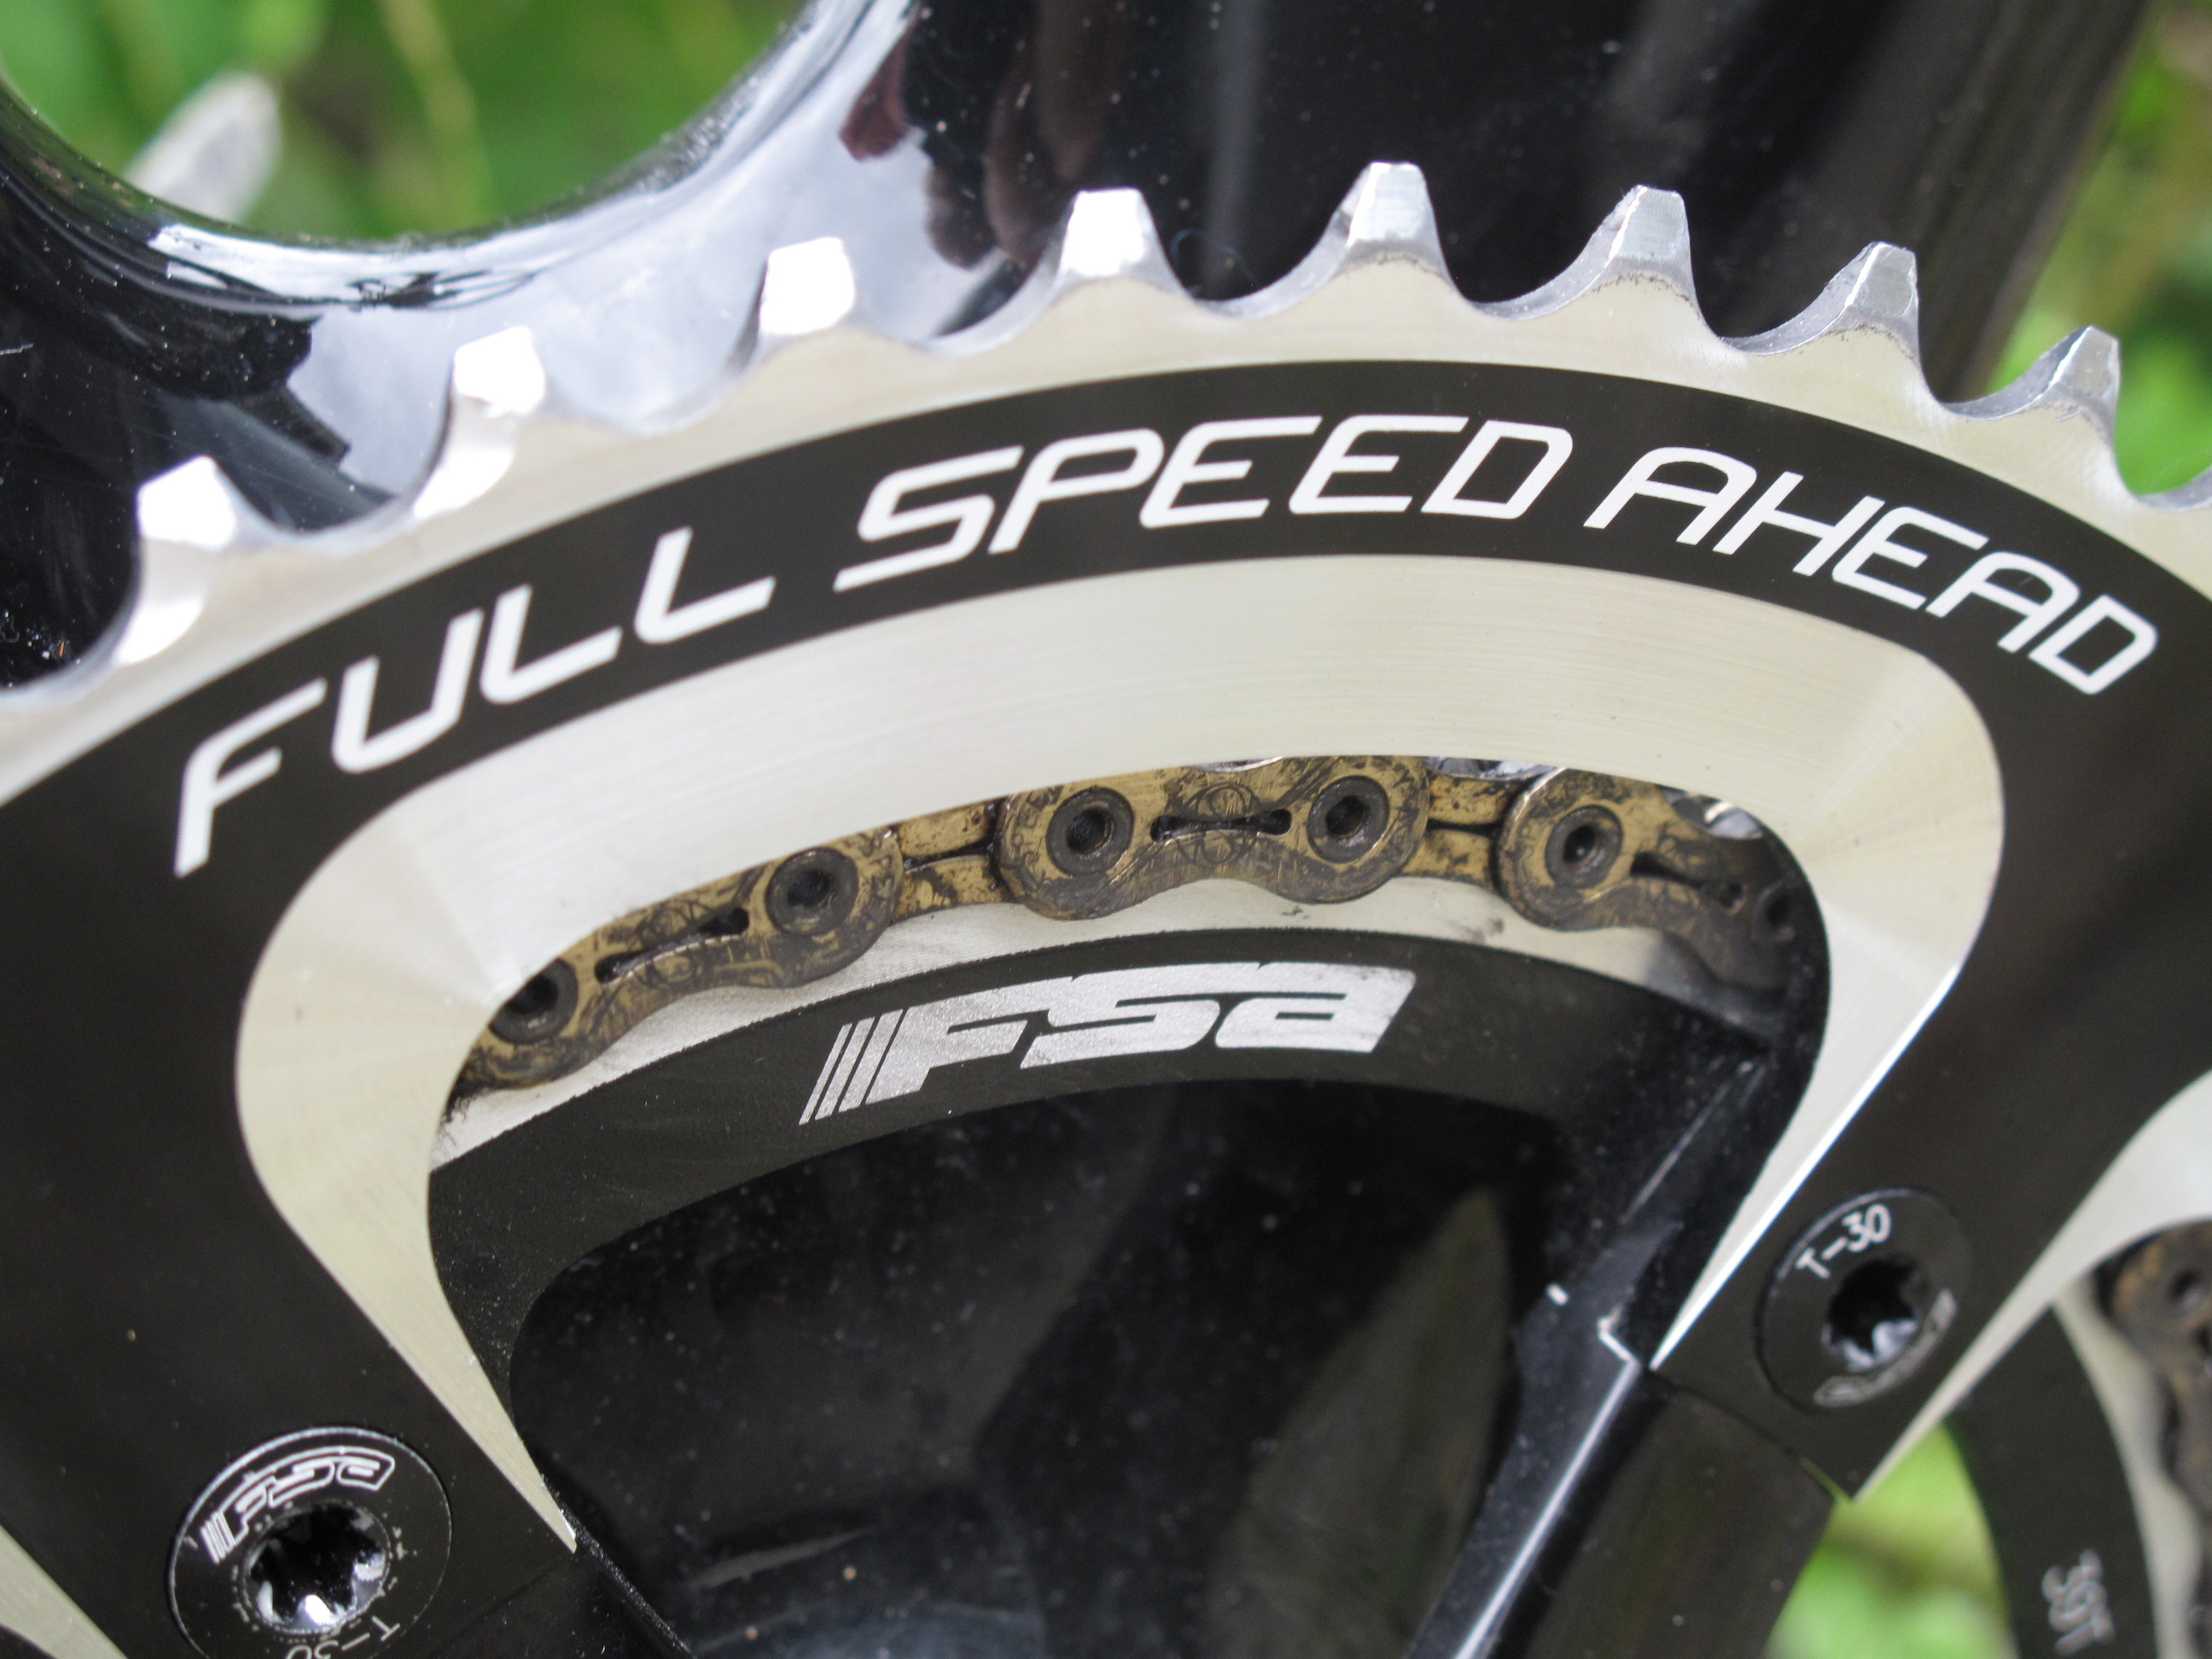 FSA - Full Speed Ahead : Photos, Diagrams & Topos : MBPost